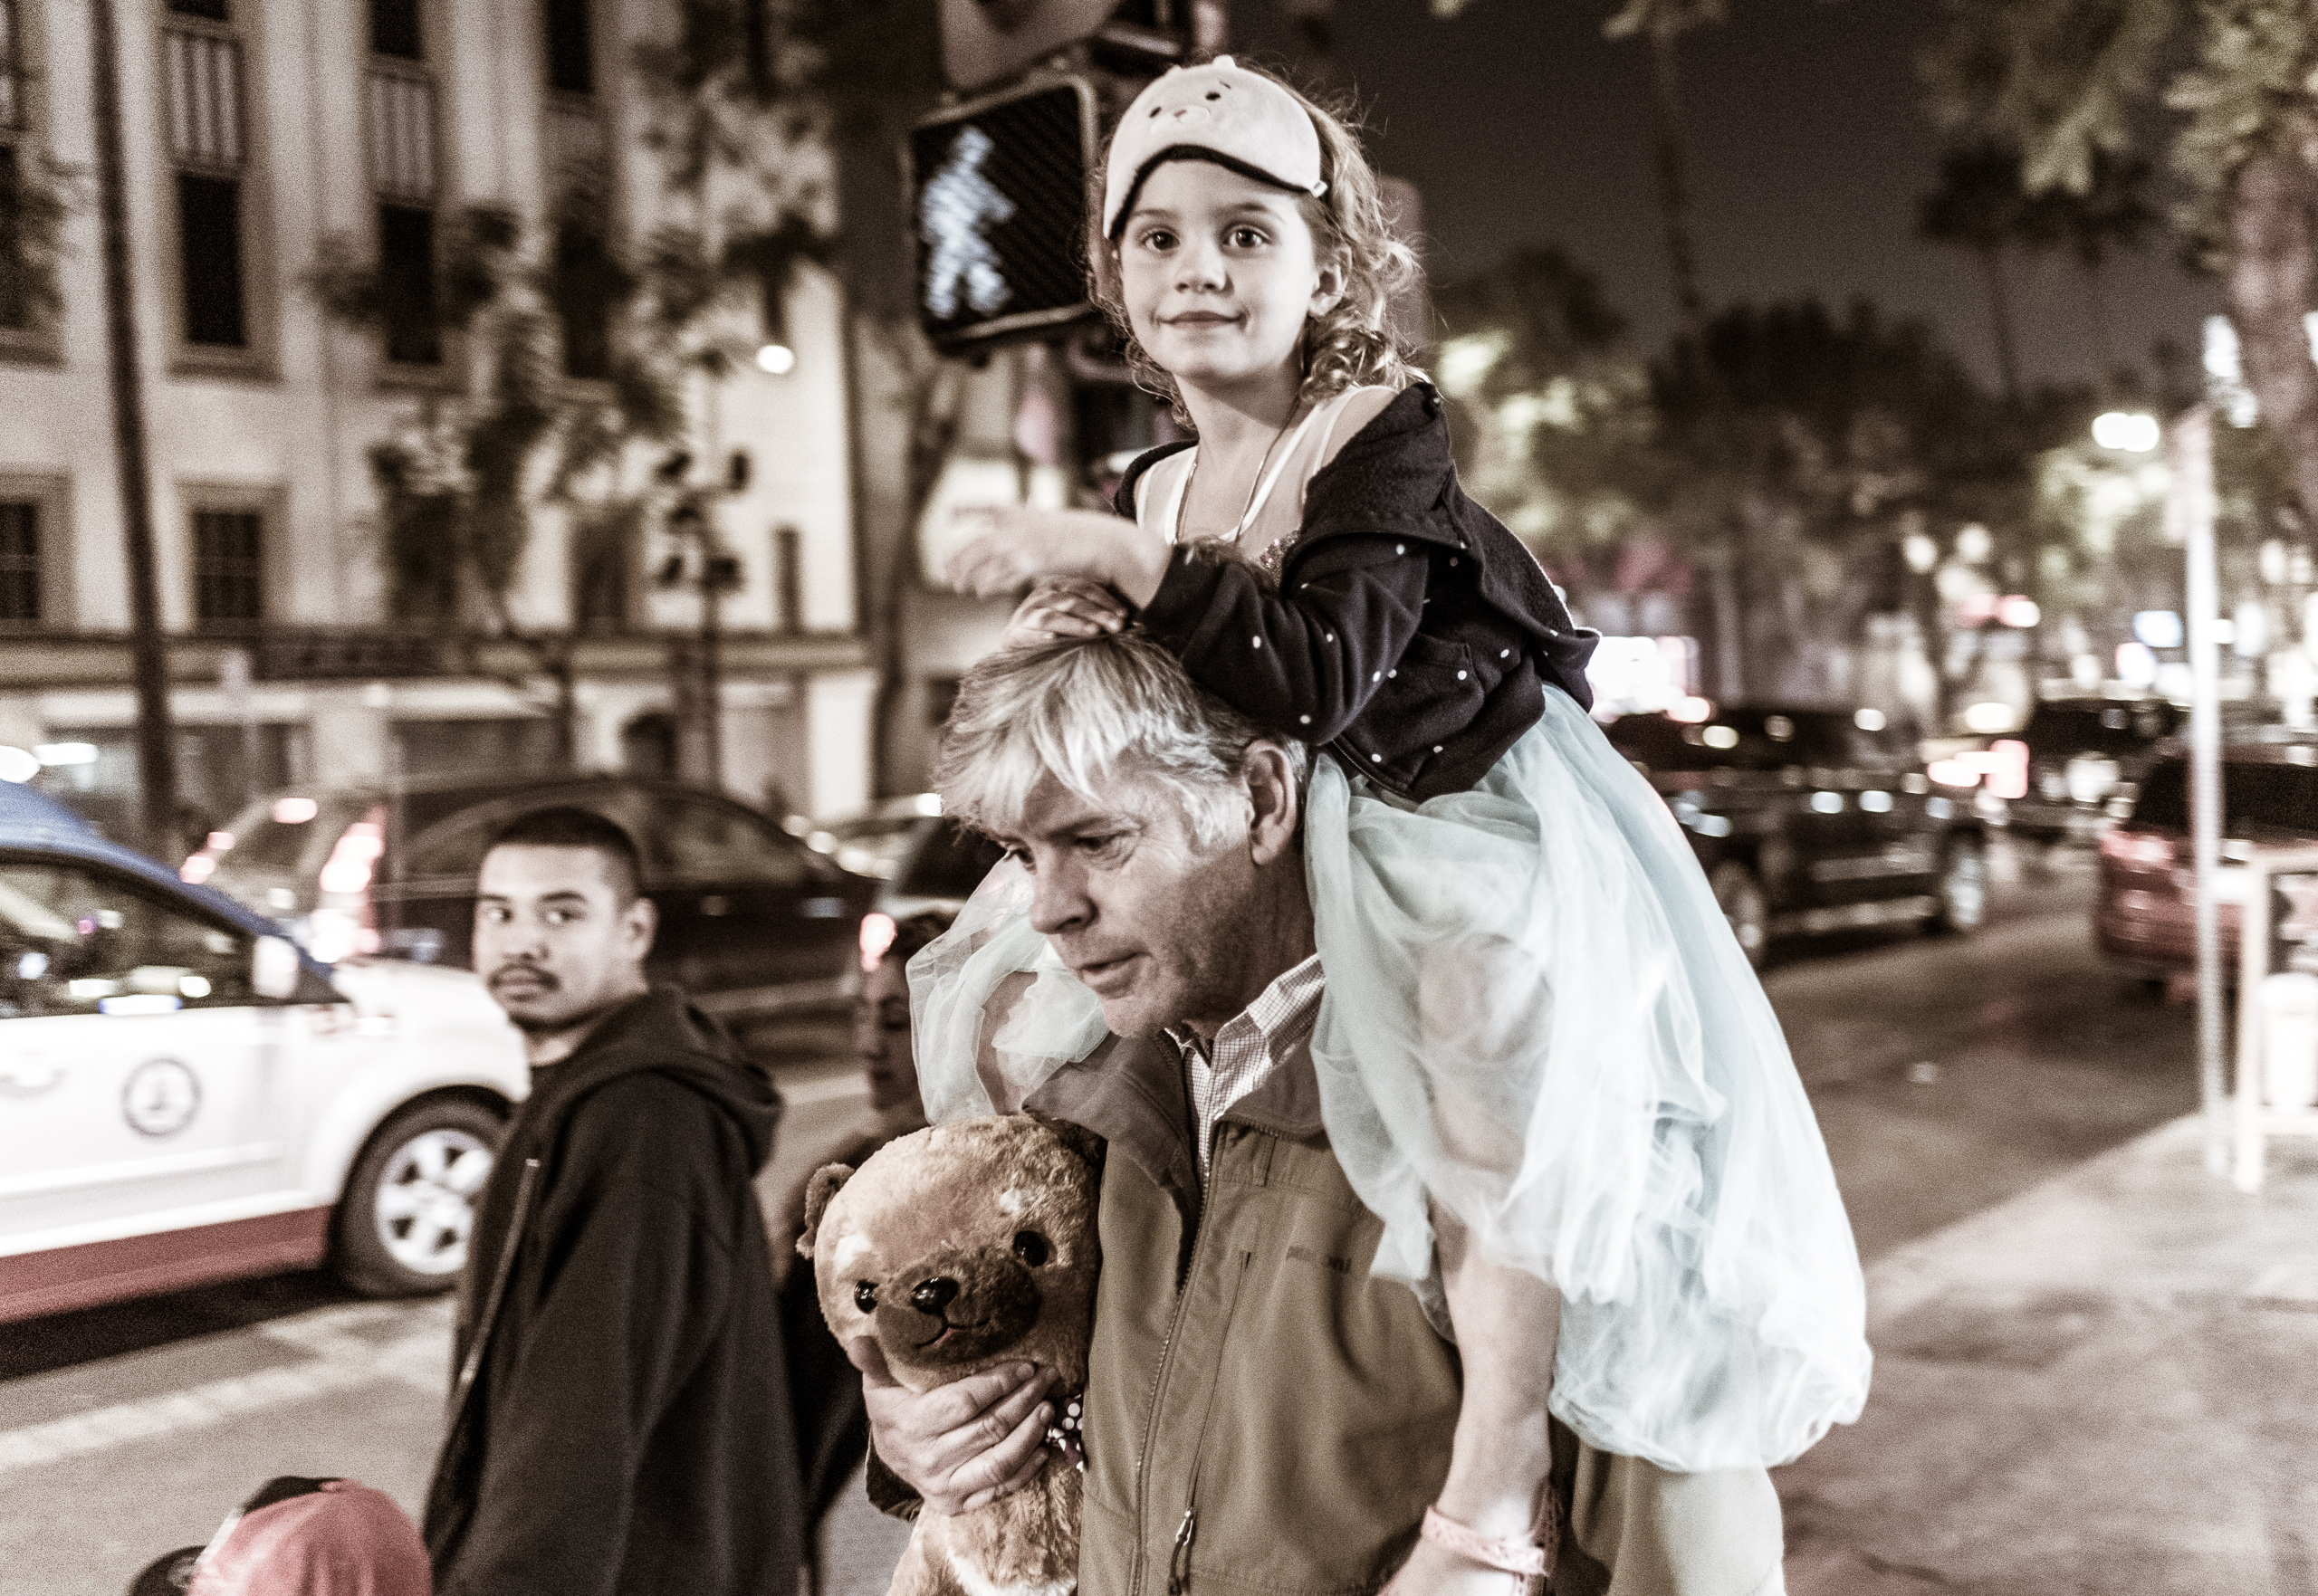 a young girl with a cat mask on her forehead rides on her dad's shoulders